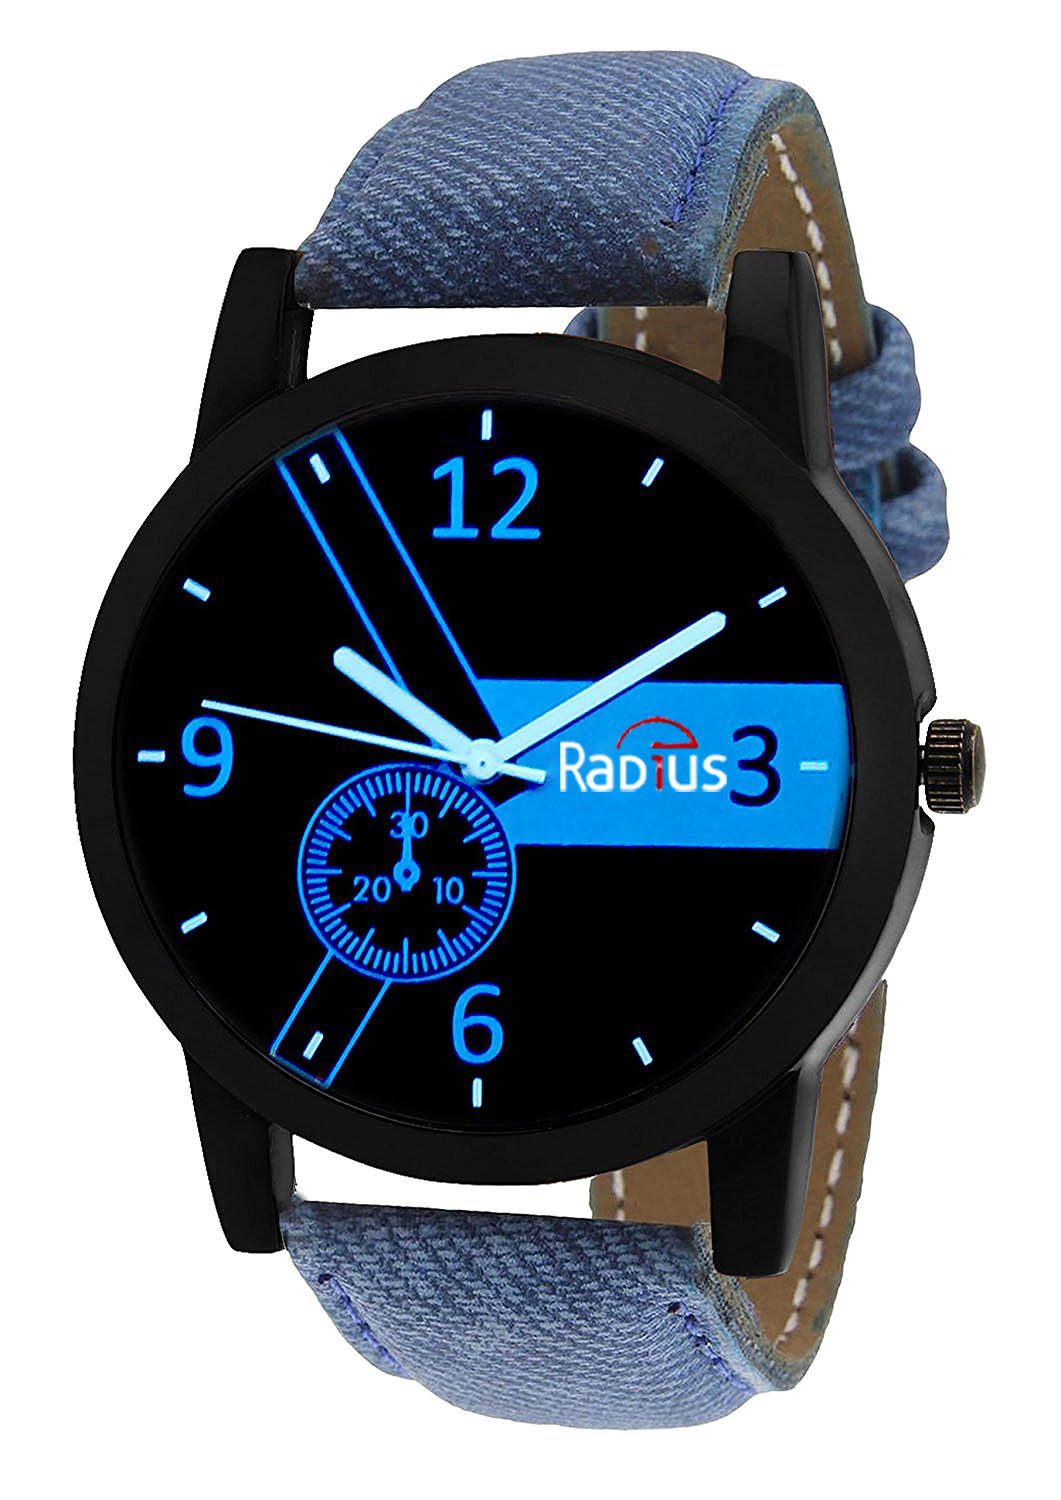 ONLY 99 DEALS PRICE DENIM WATCH FOR MEN AND BOY